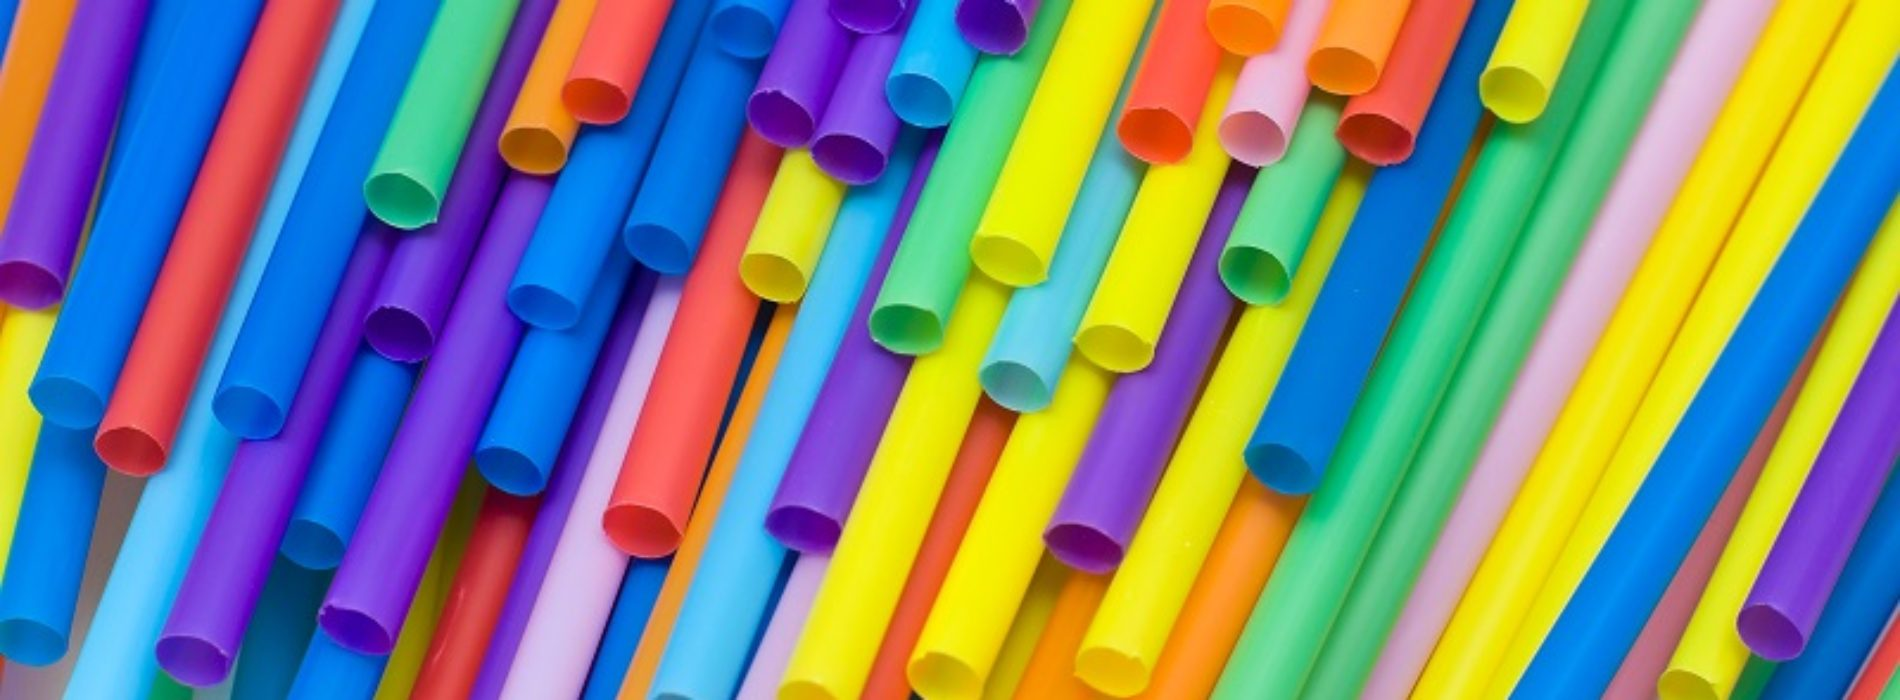 The great plastic straw debate: how will it affect disabled people